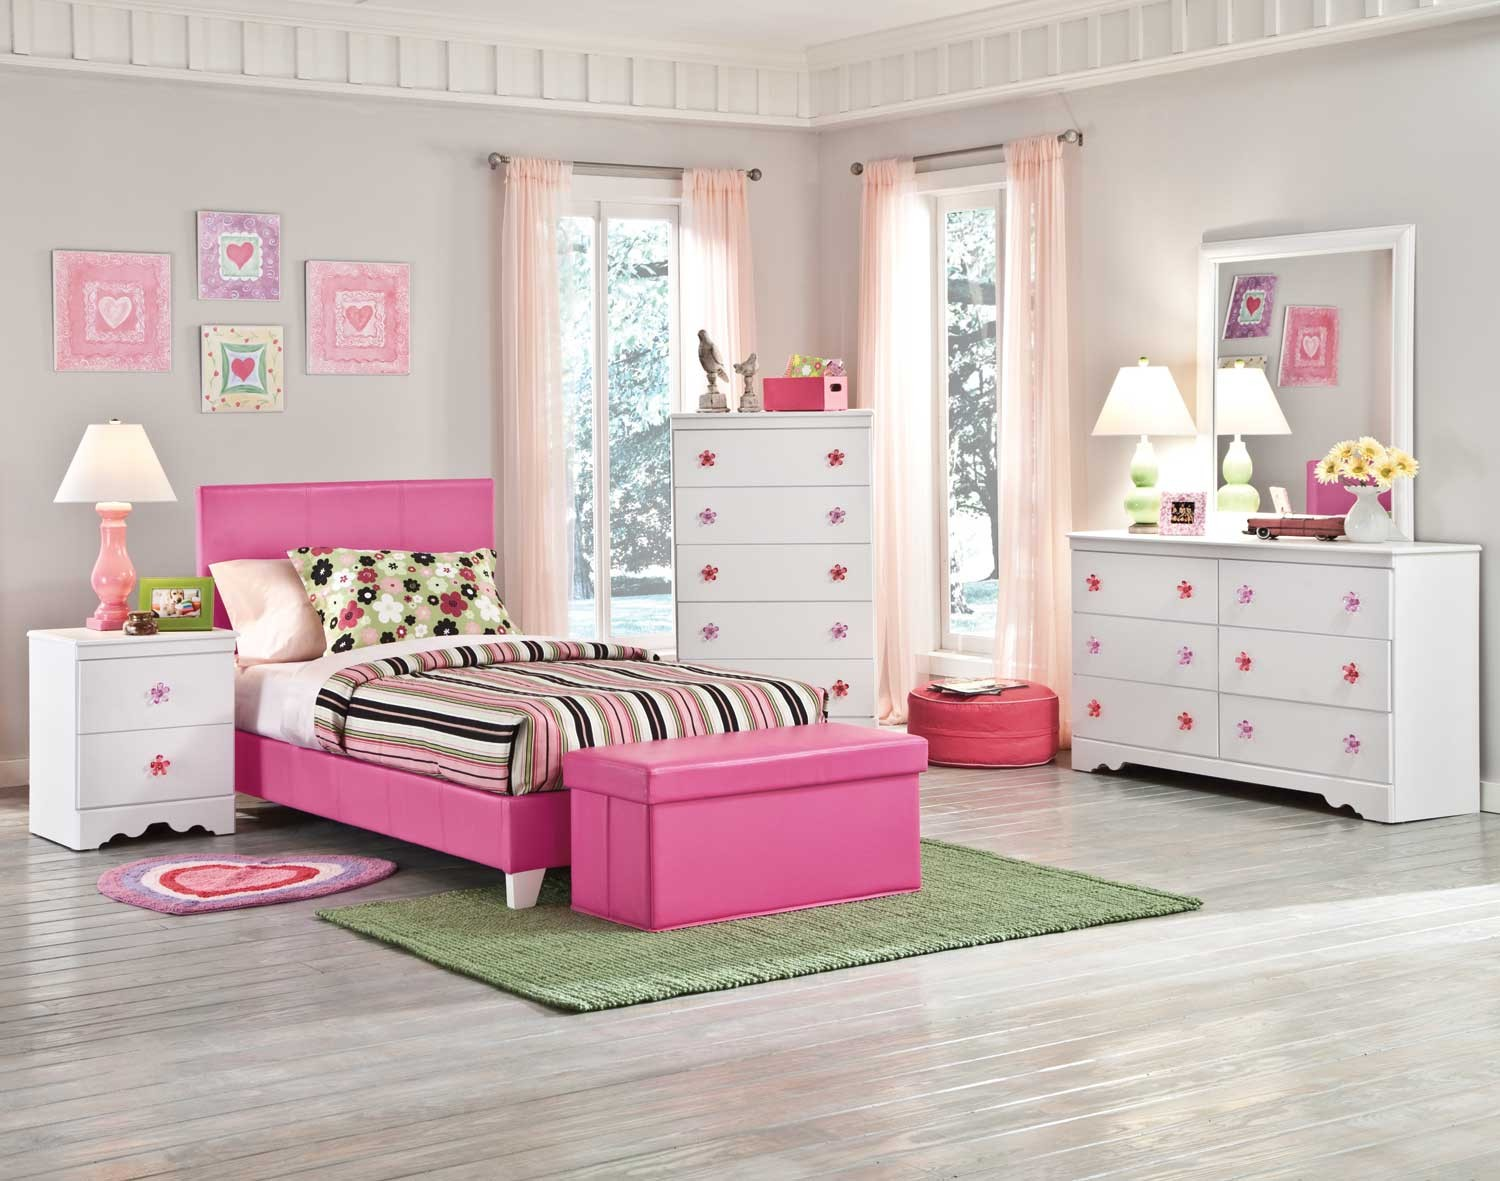 Image of: Solid Pink Twin Comforter Design